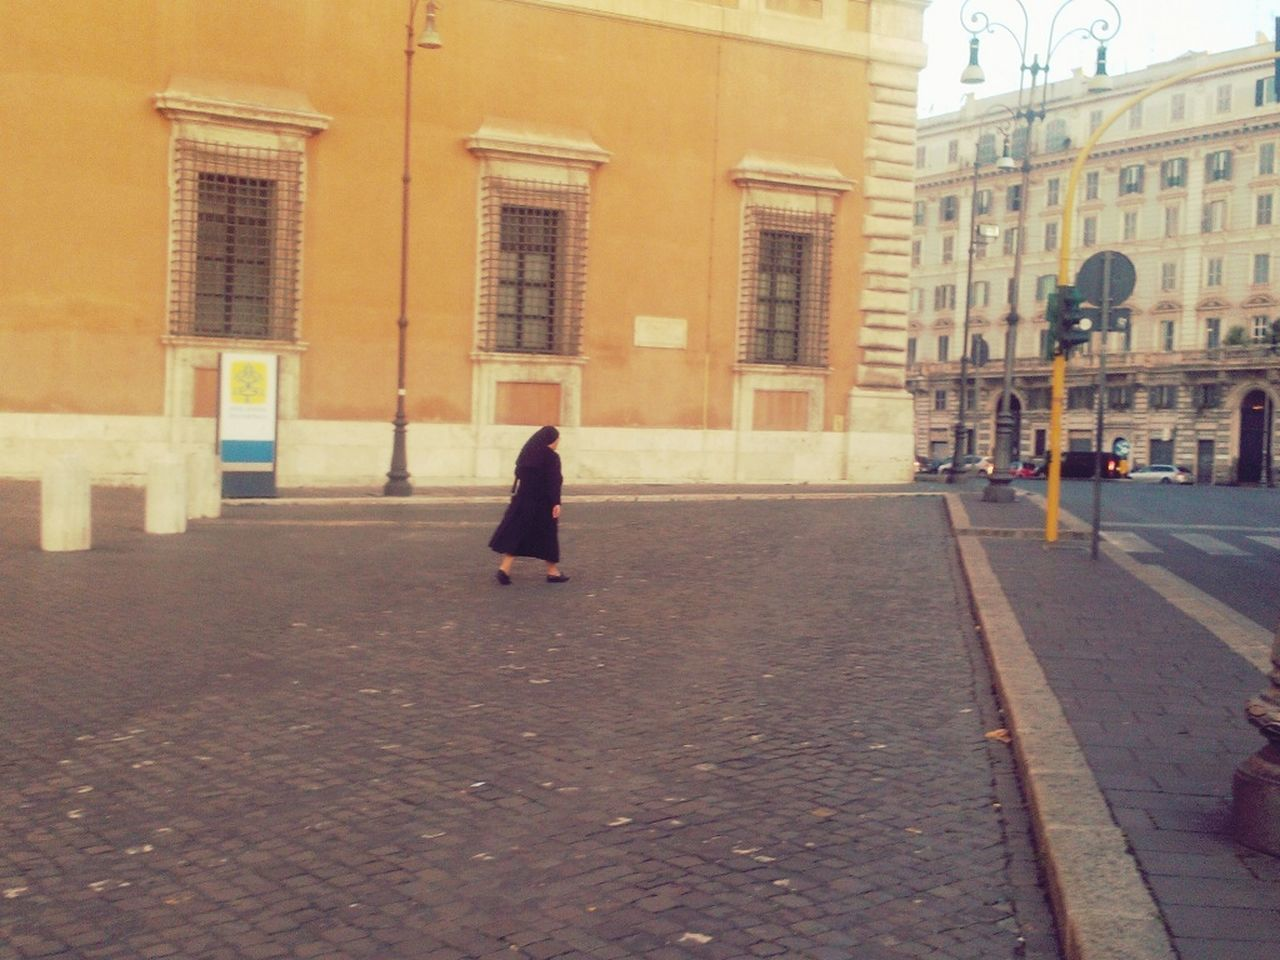 street, building exterior, walking, architecture, city, built structure, full length, road, outdoors, women, one person, pedestrian, day, people, adult